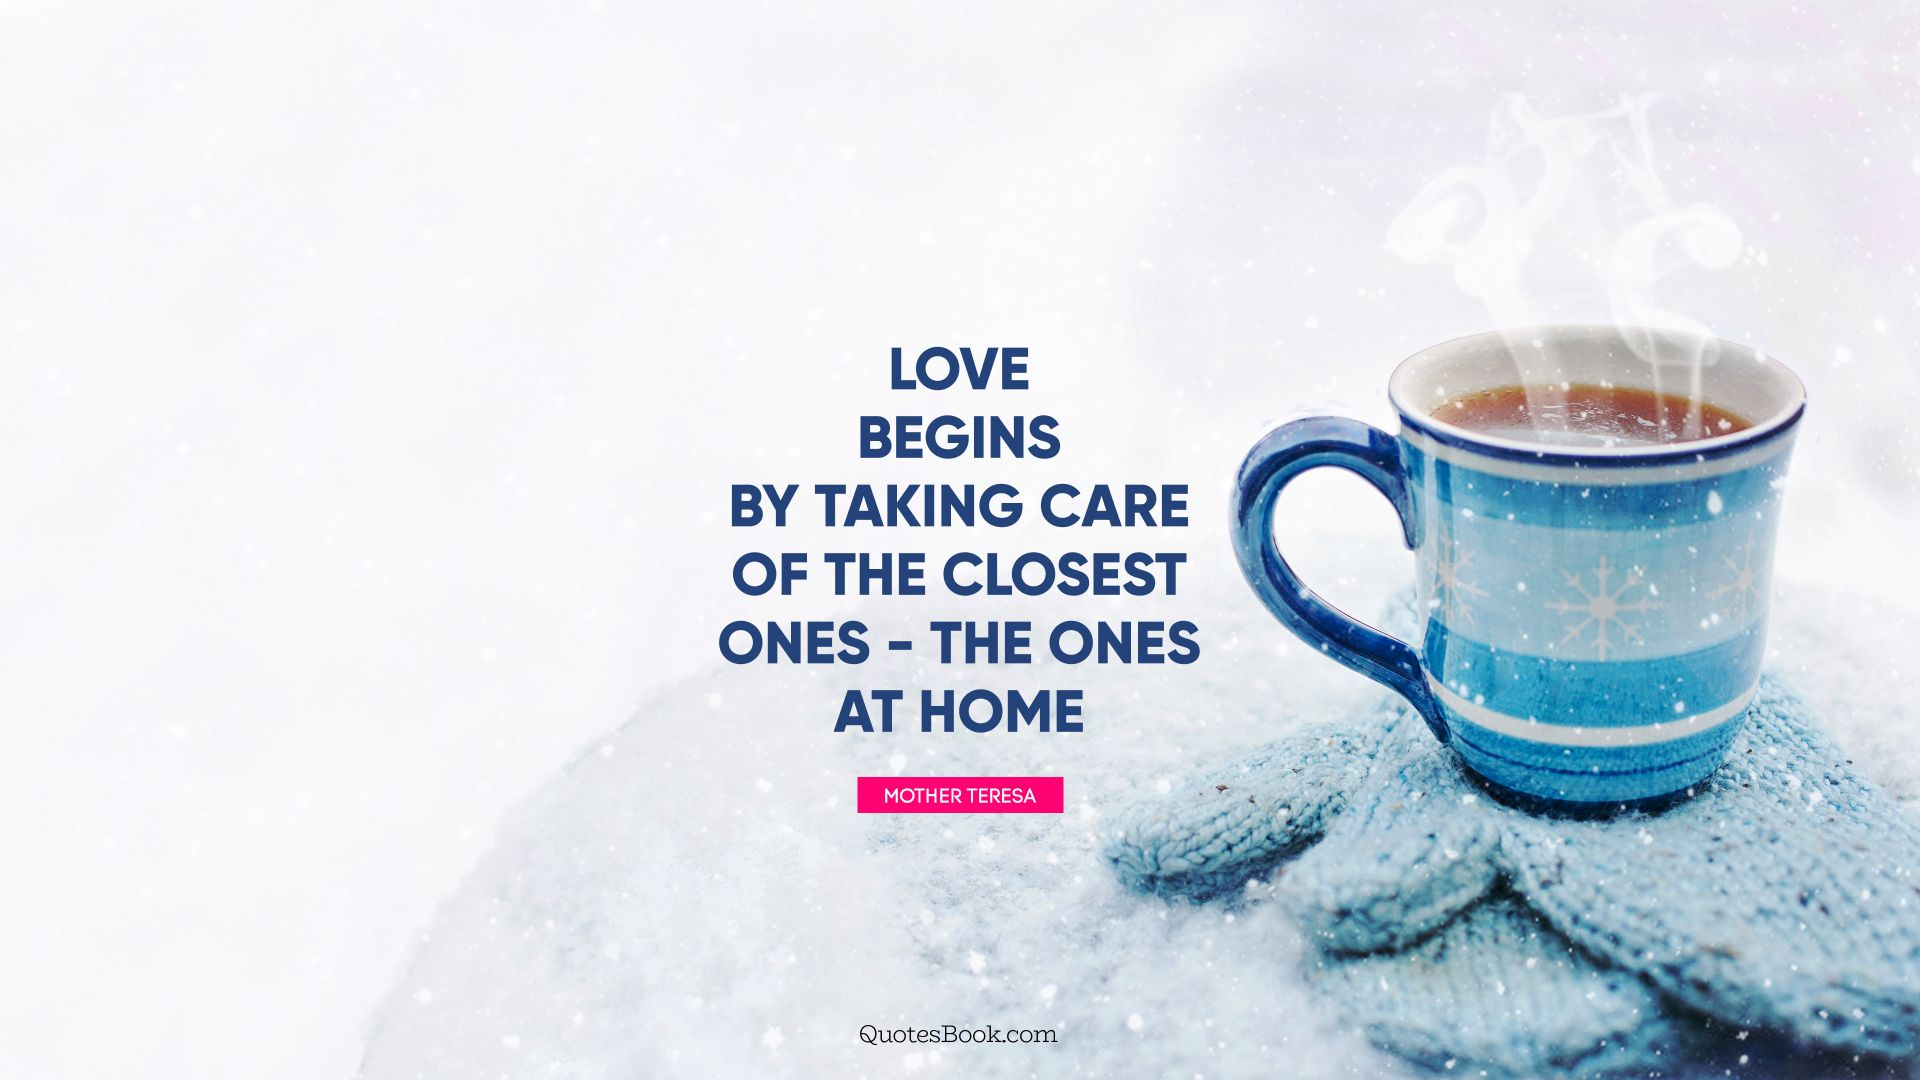 Love begins by taking care of the closest ones - the ones at home. - Quote by Mother Teresa